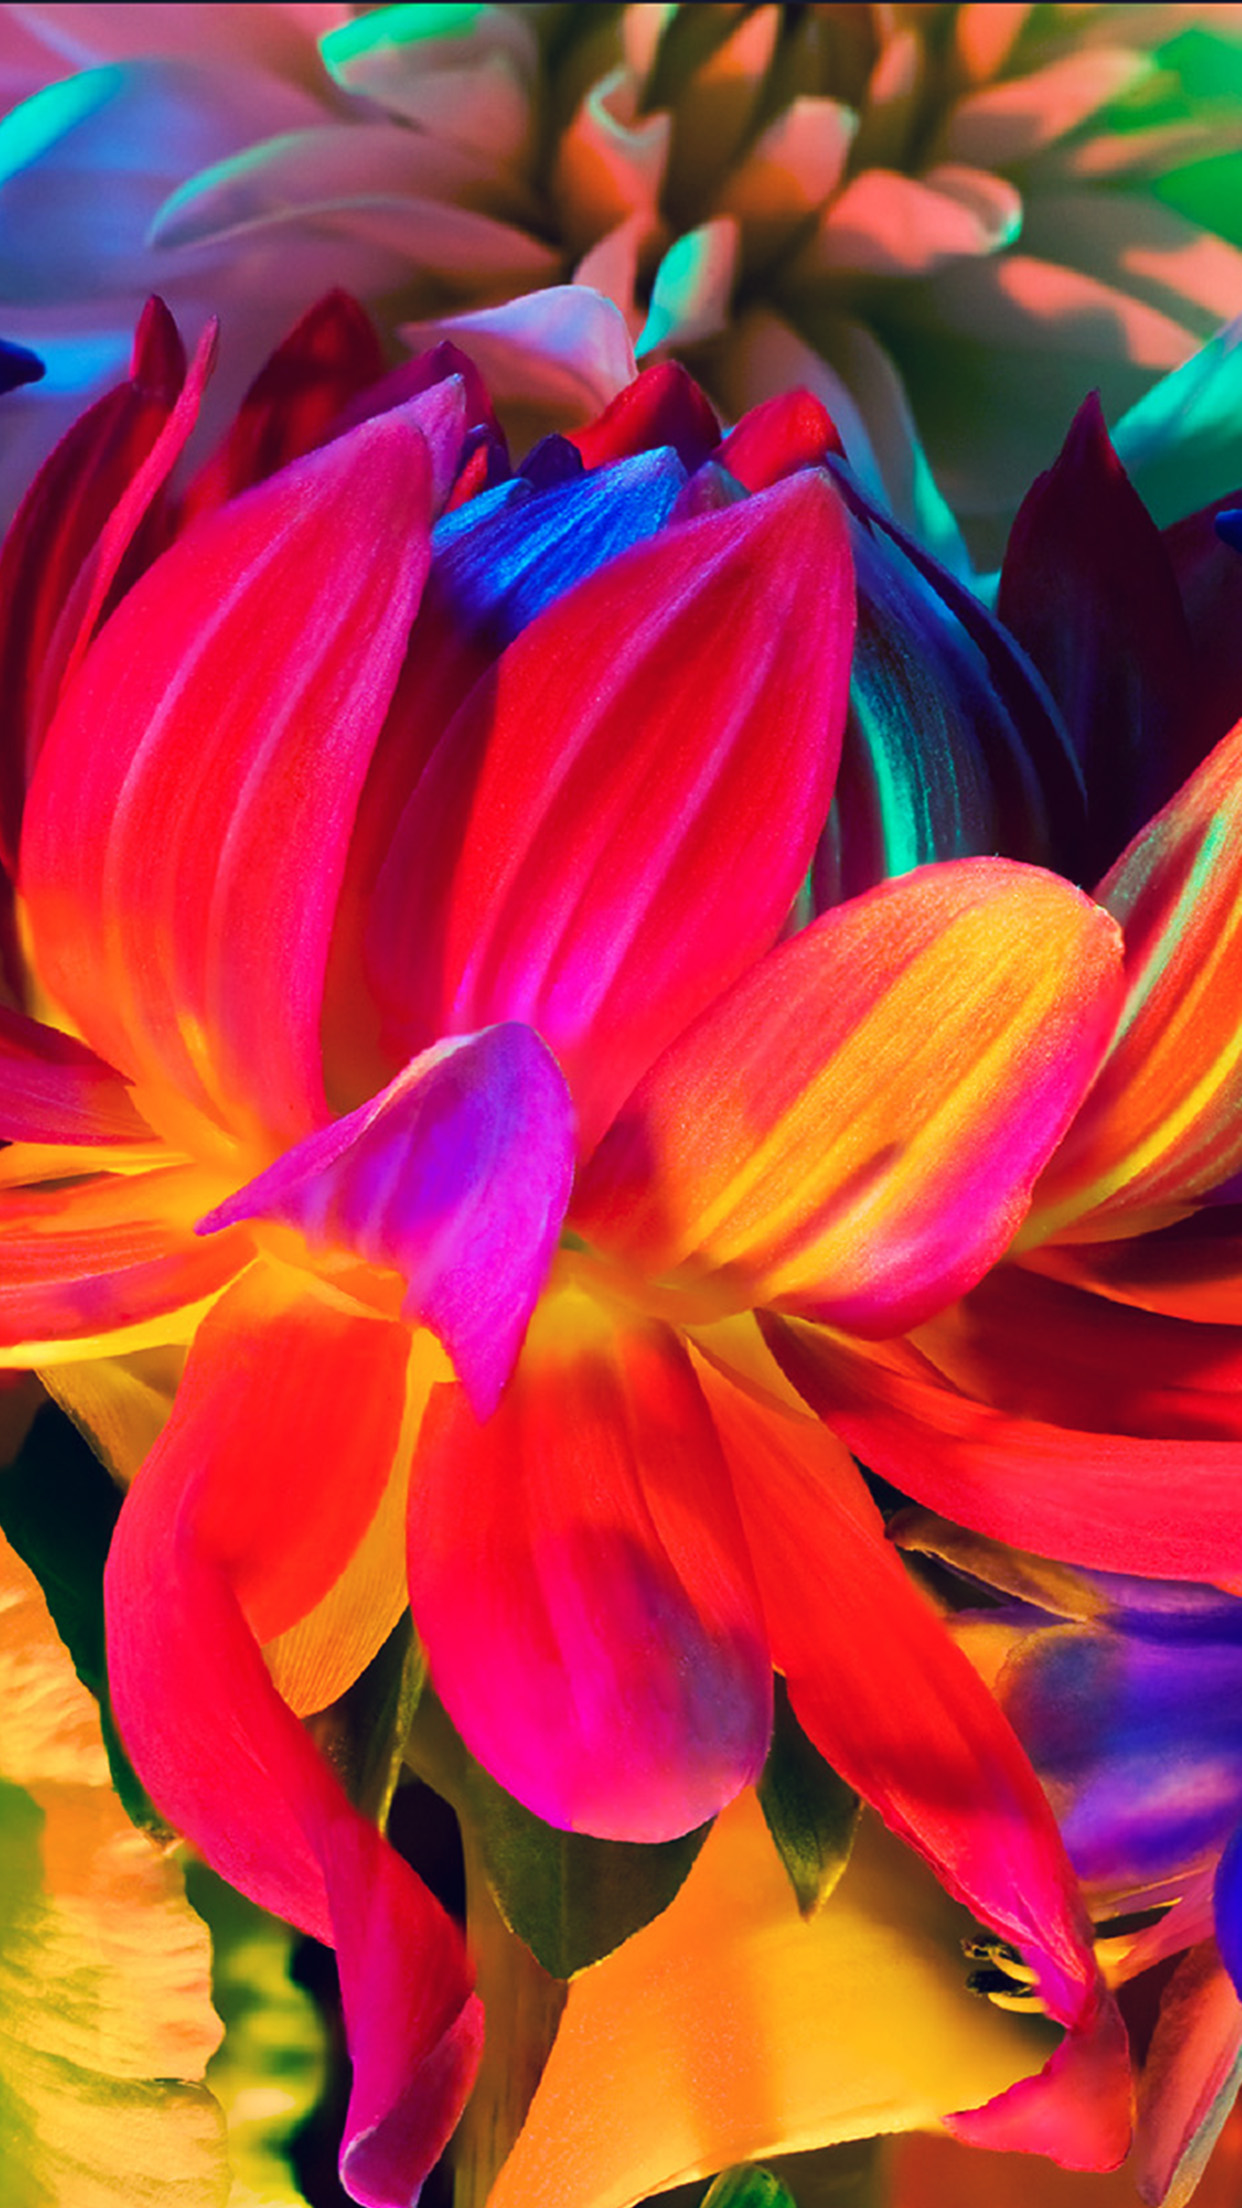 Apple Macbook Flower Rainbow Color Illustration Art - Show Color In Photography - HD Wallpaper